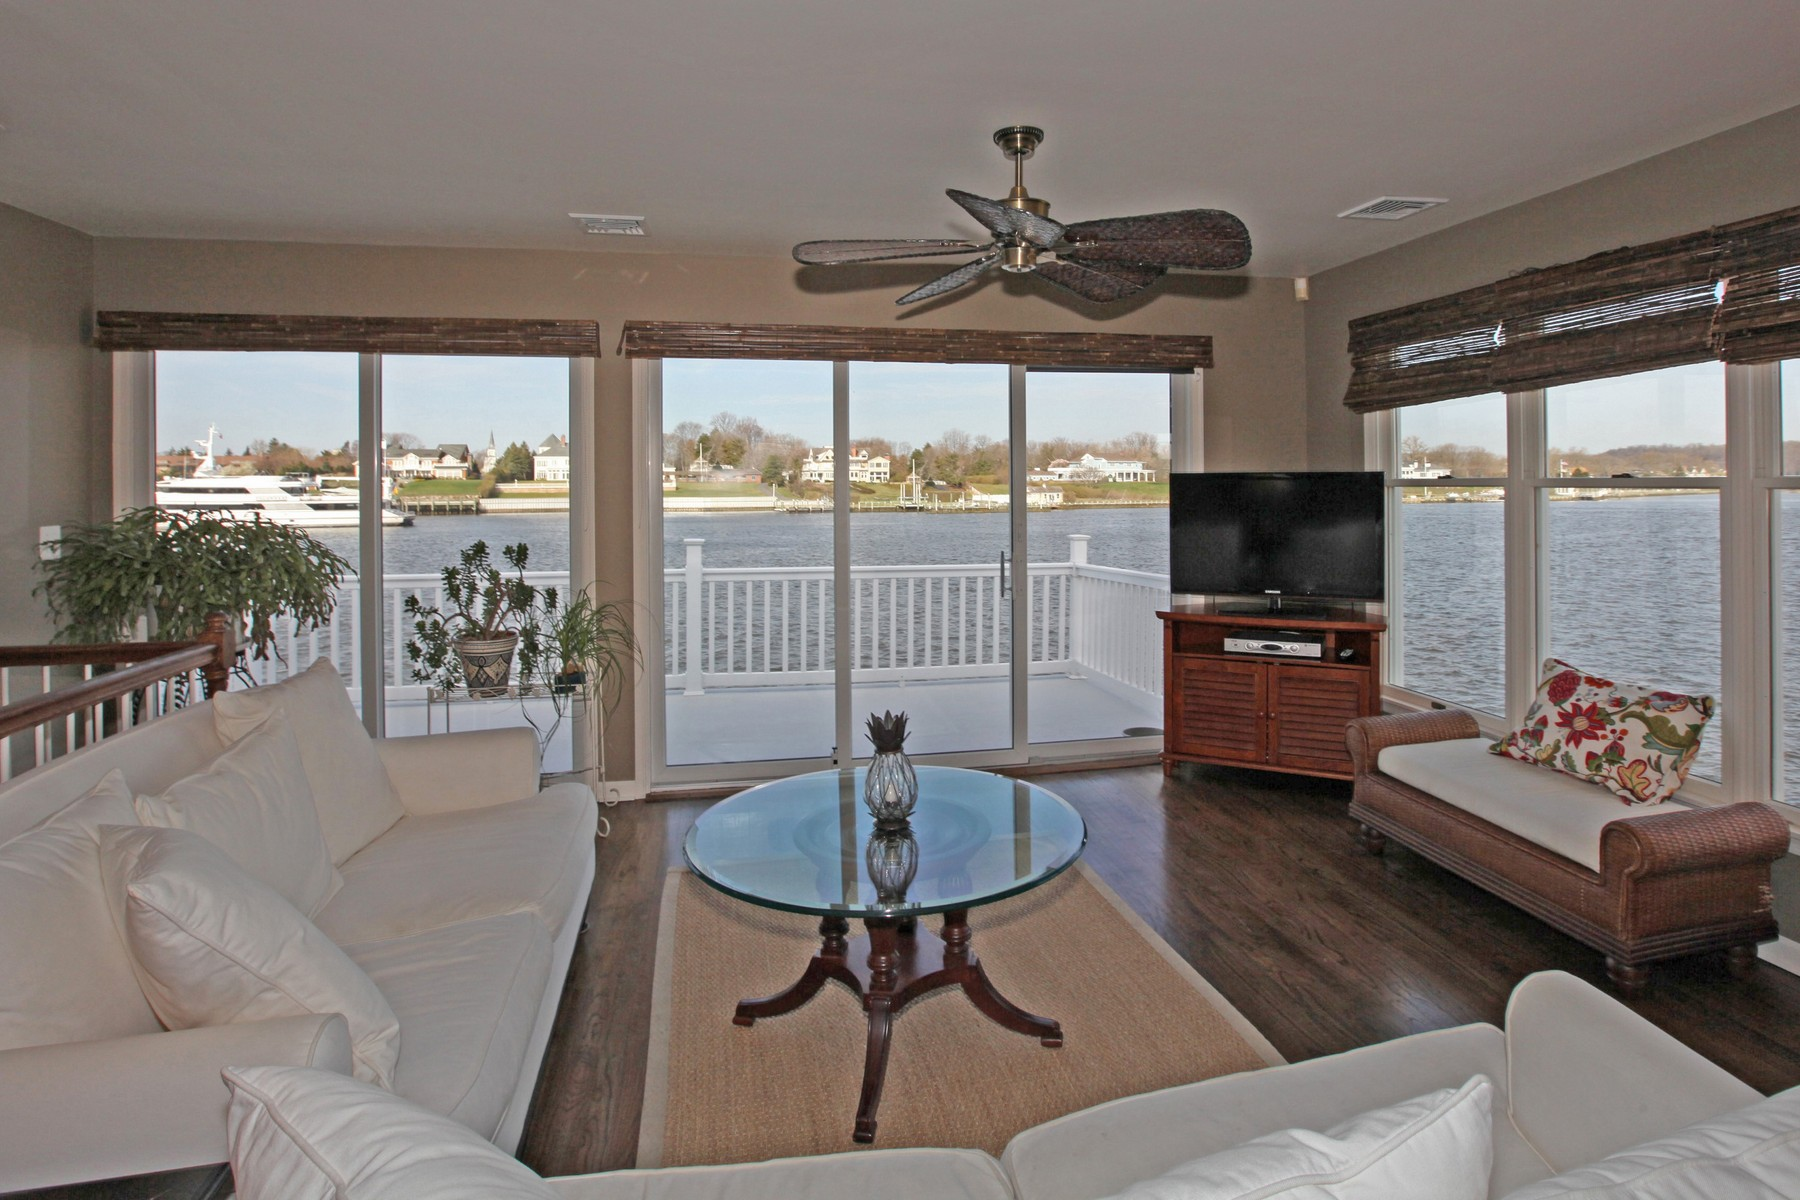 Single Family Home for Rent at Waterfront Living 916 Ocean Avenue Sea Bright, 07760 United States